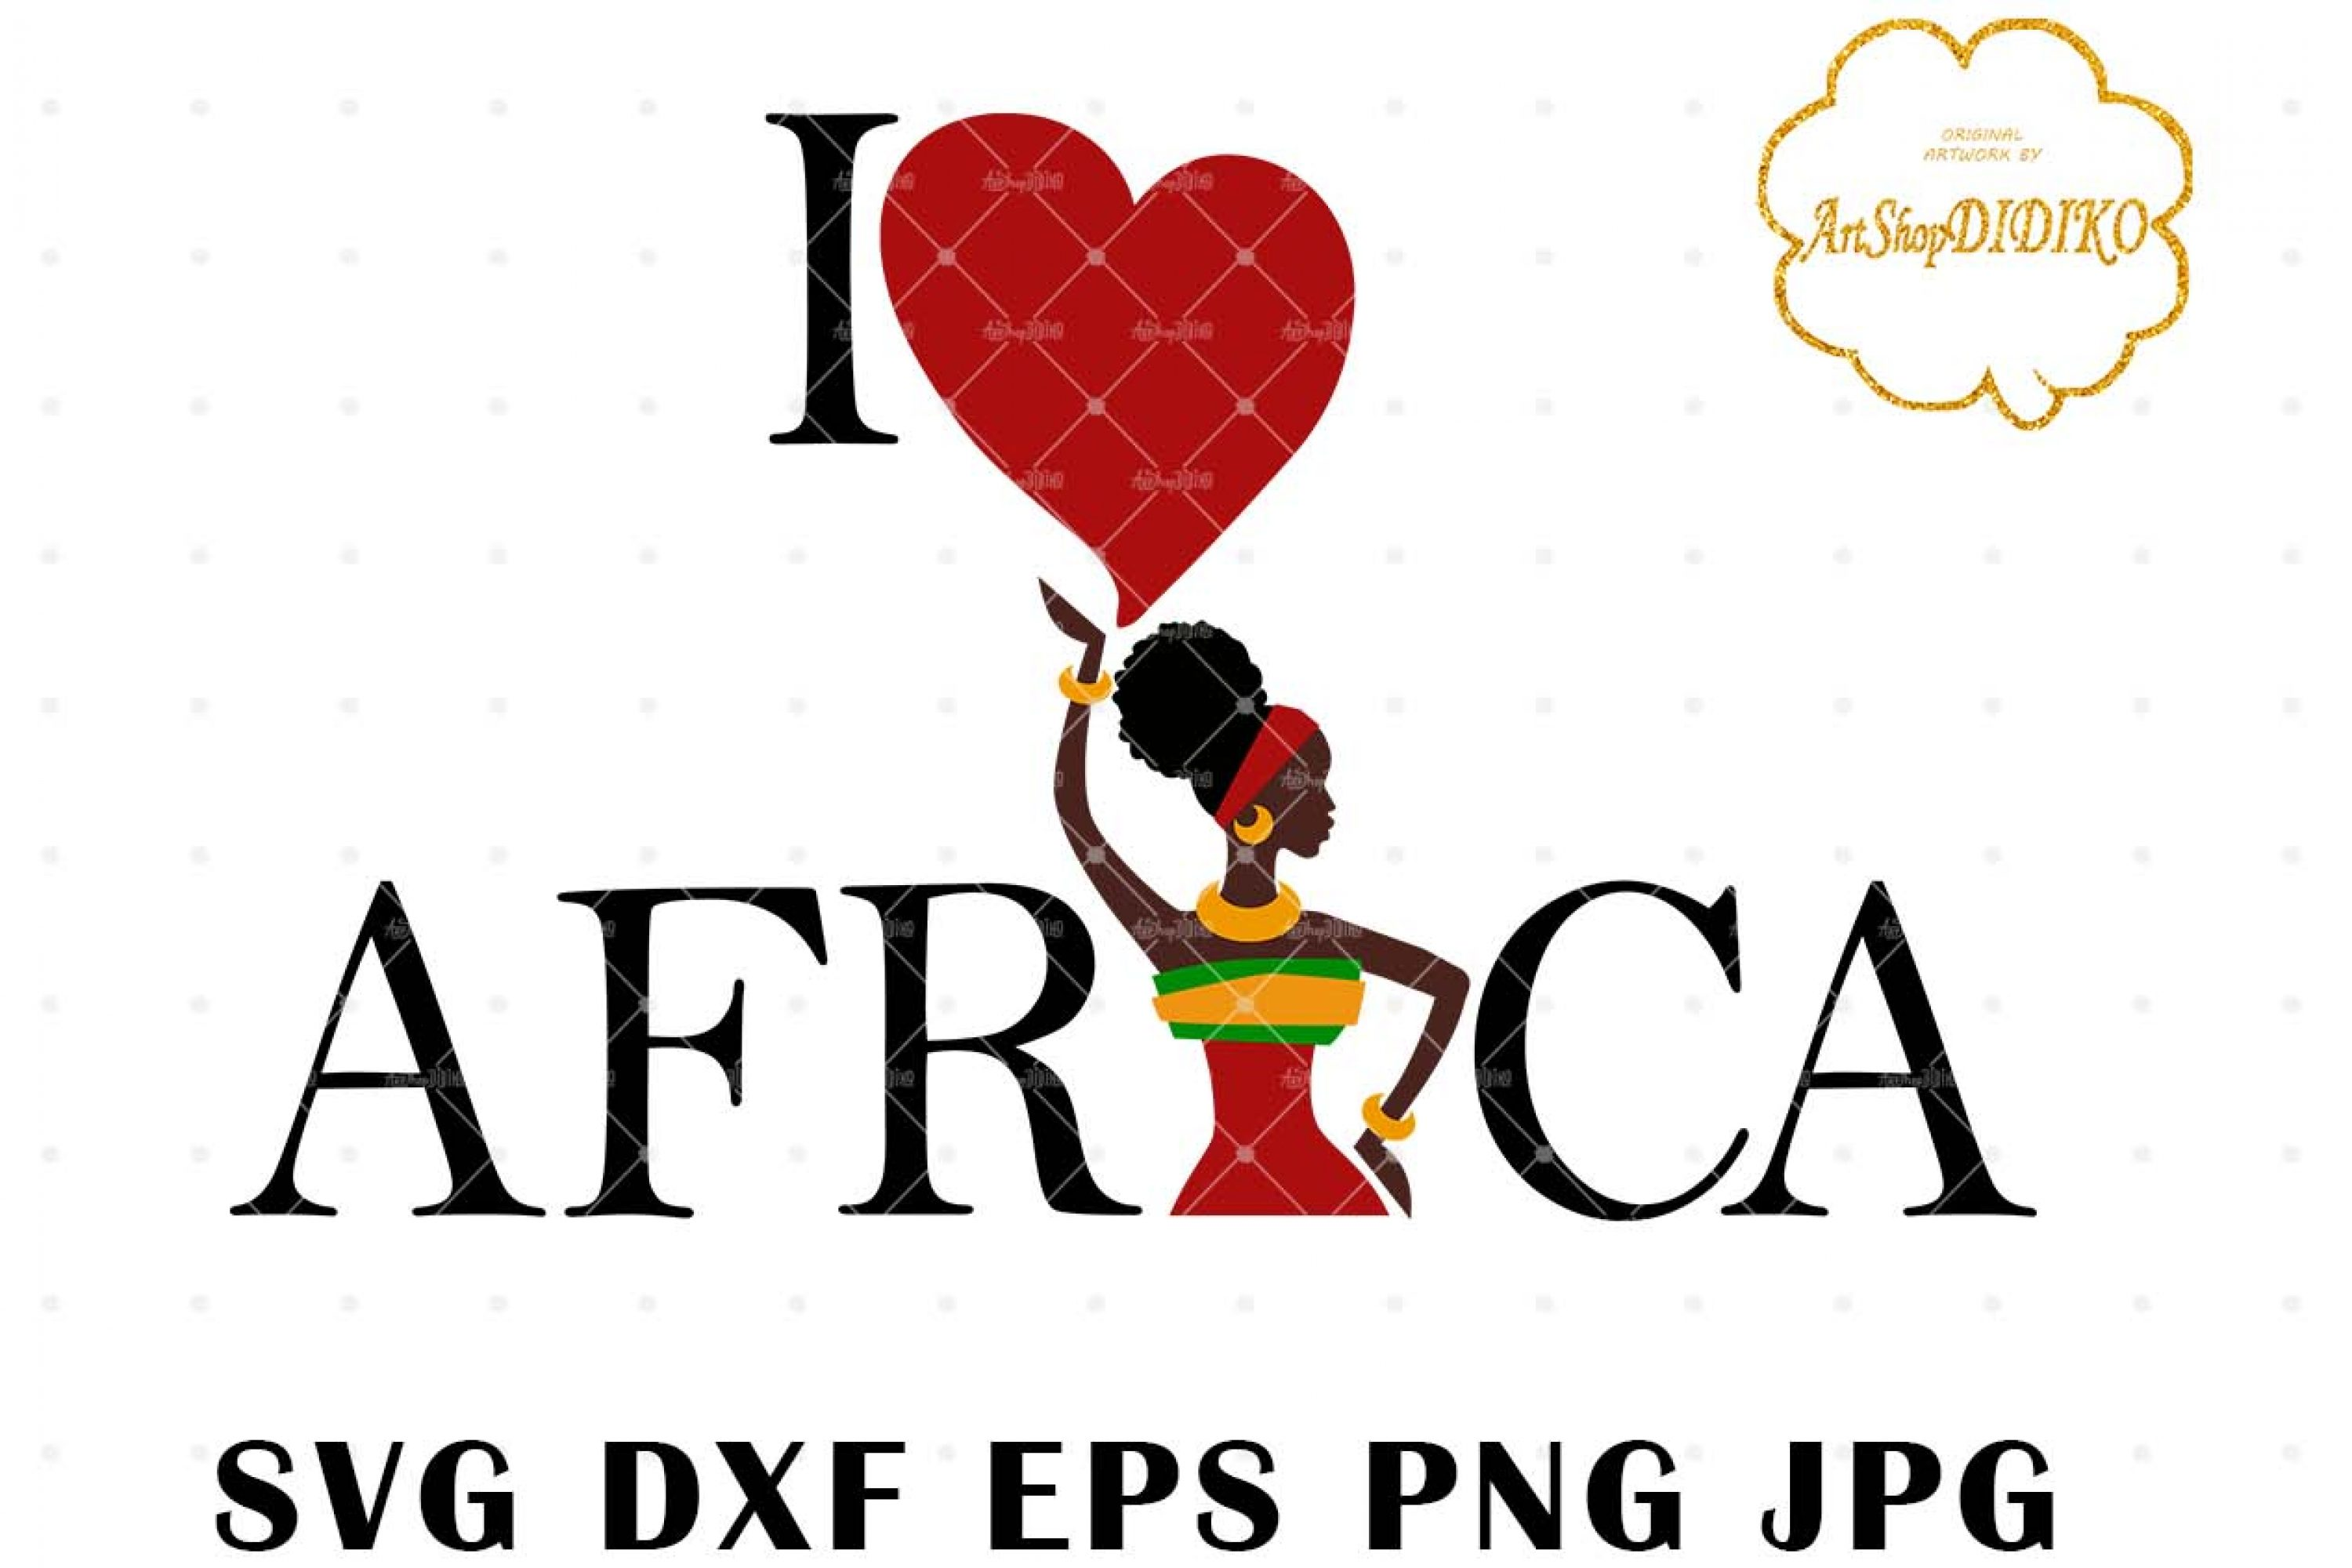 I Love Africa SVG, African Woman SVG, Afro SVG